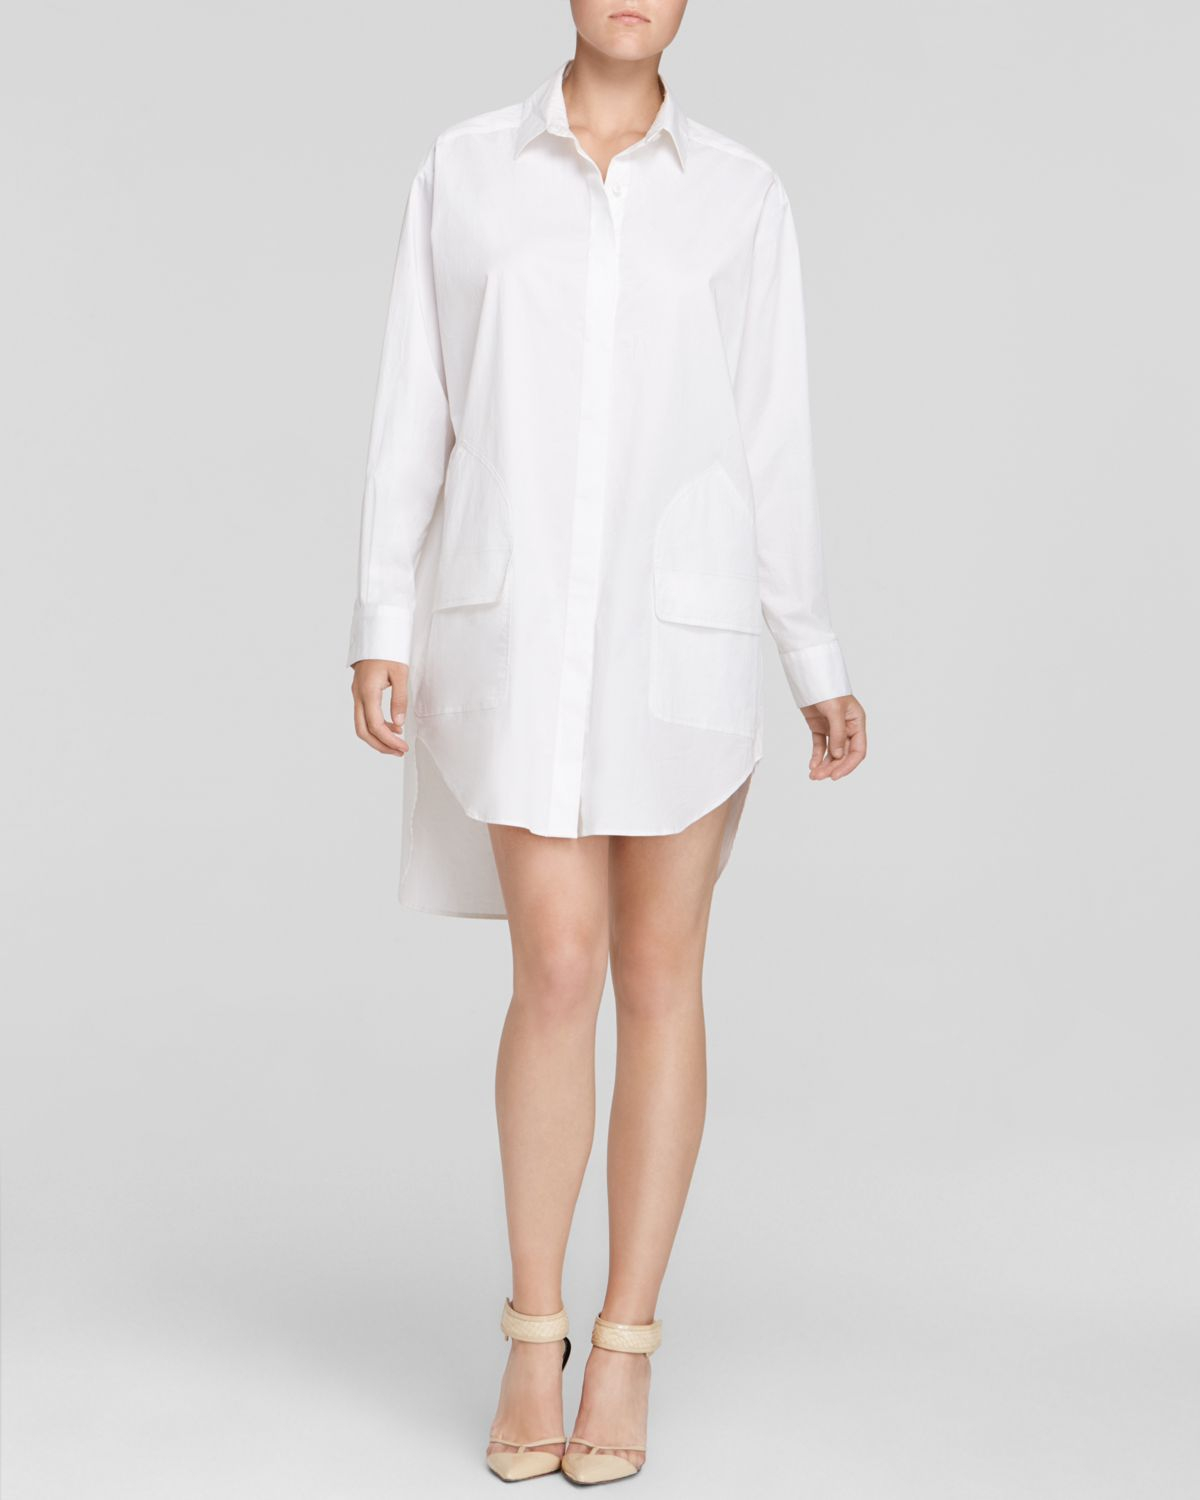 2f4be66f656 DKNY Tunic Shirt Dress in White - Lyst